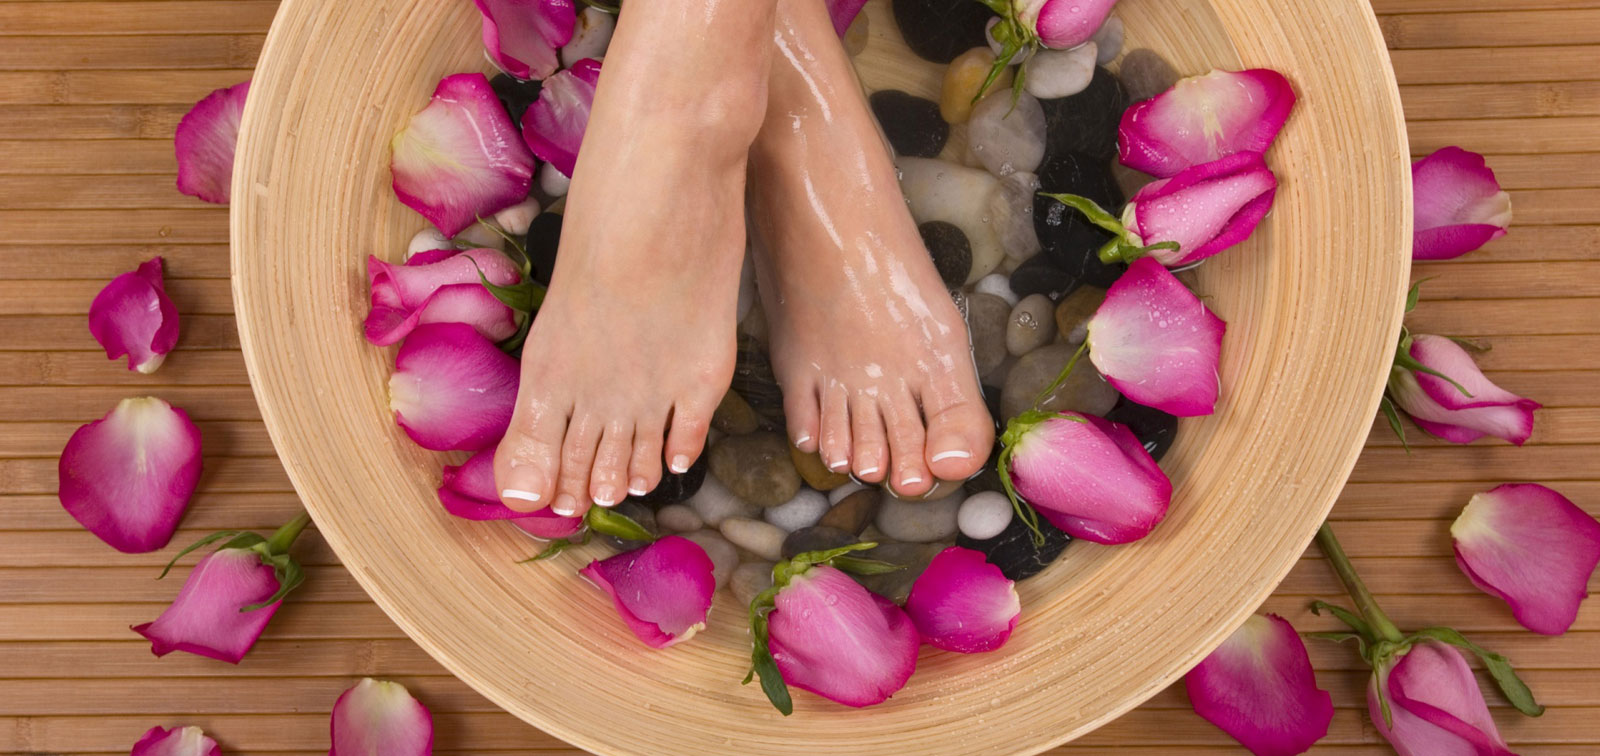 manicure-pedicure-spa